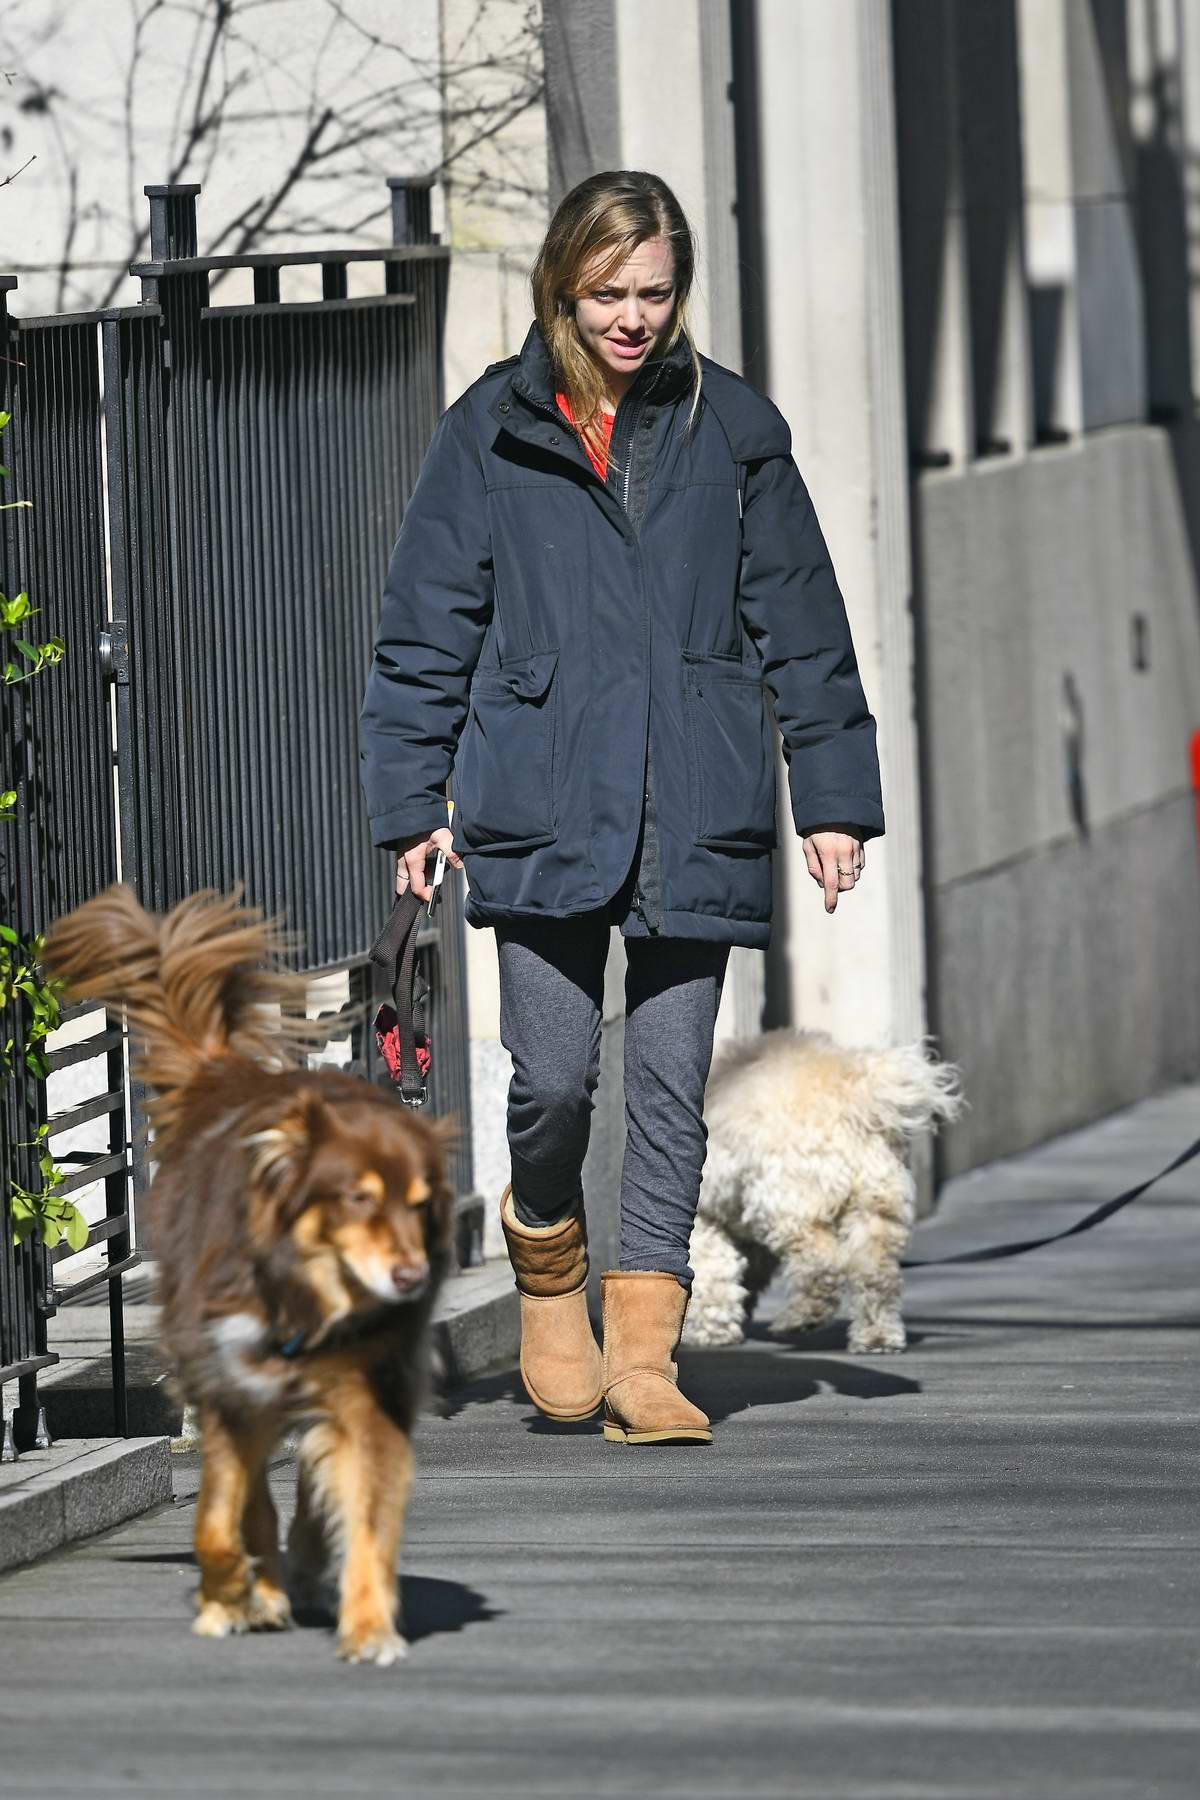 Amanda Seyfried walks her dog without a leash while texting on her cellphone in New York City